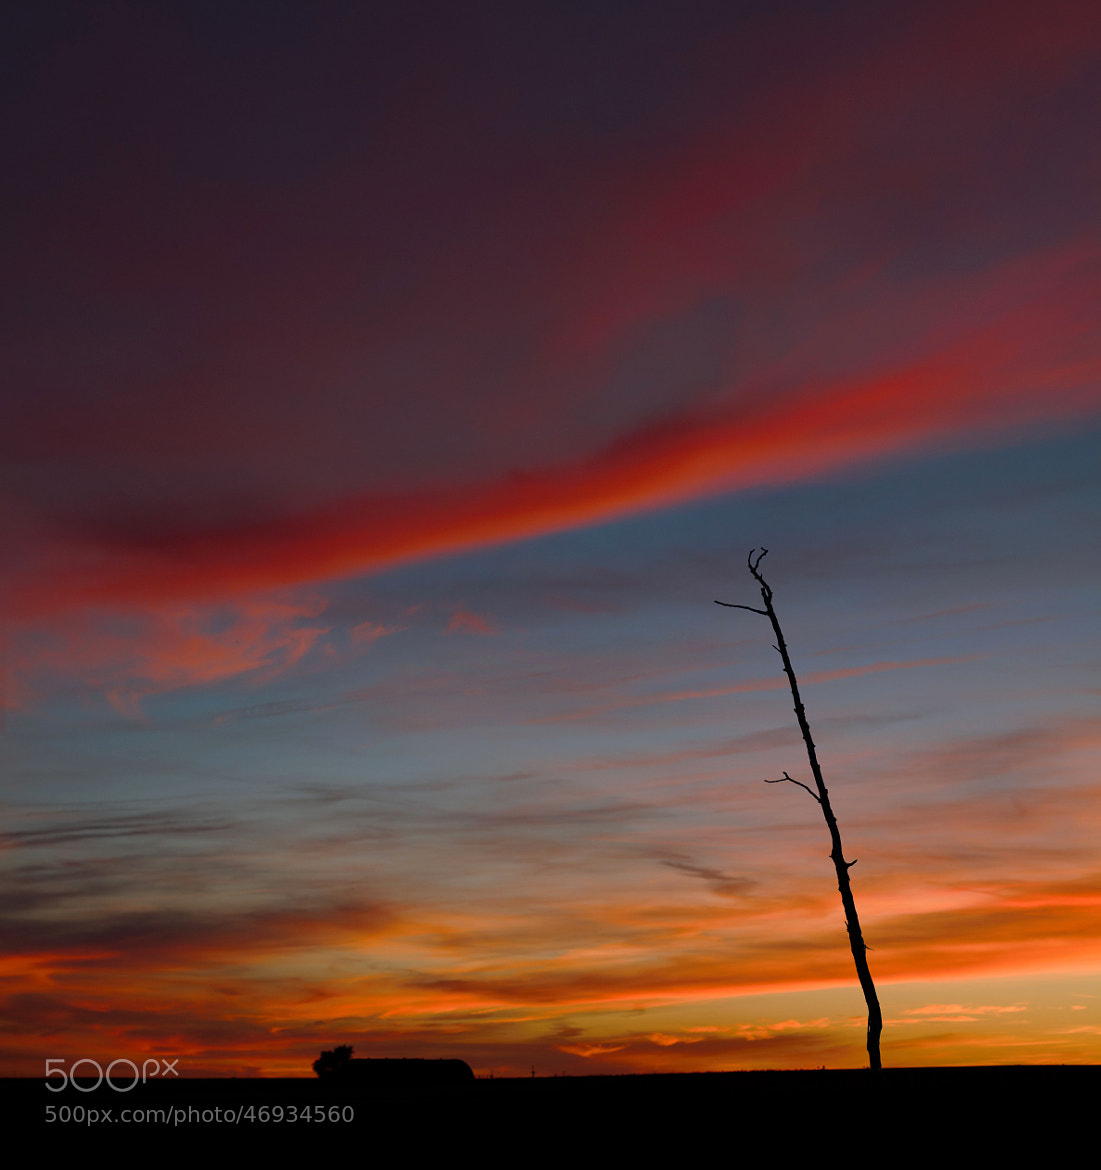 Photograph Days of Heaven by Luis Mariano González on 500px